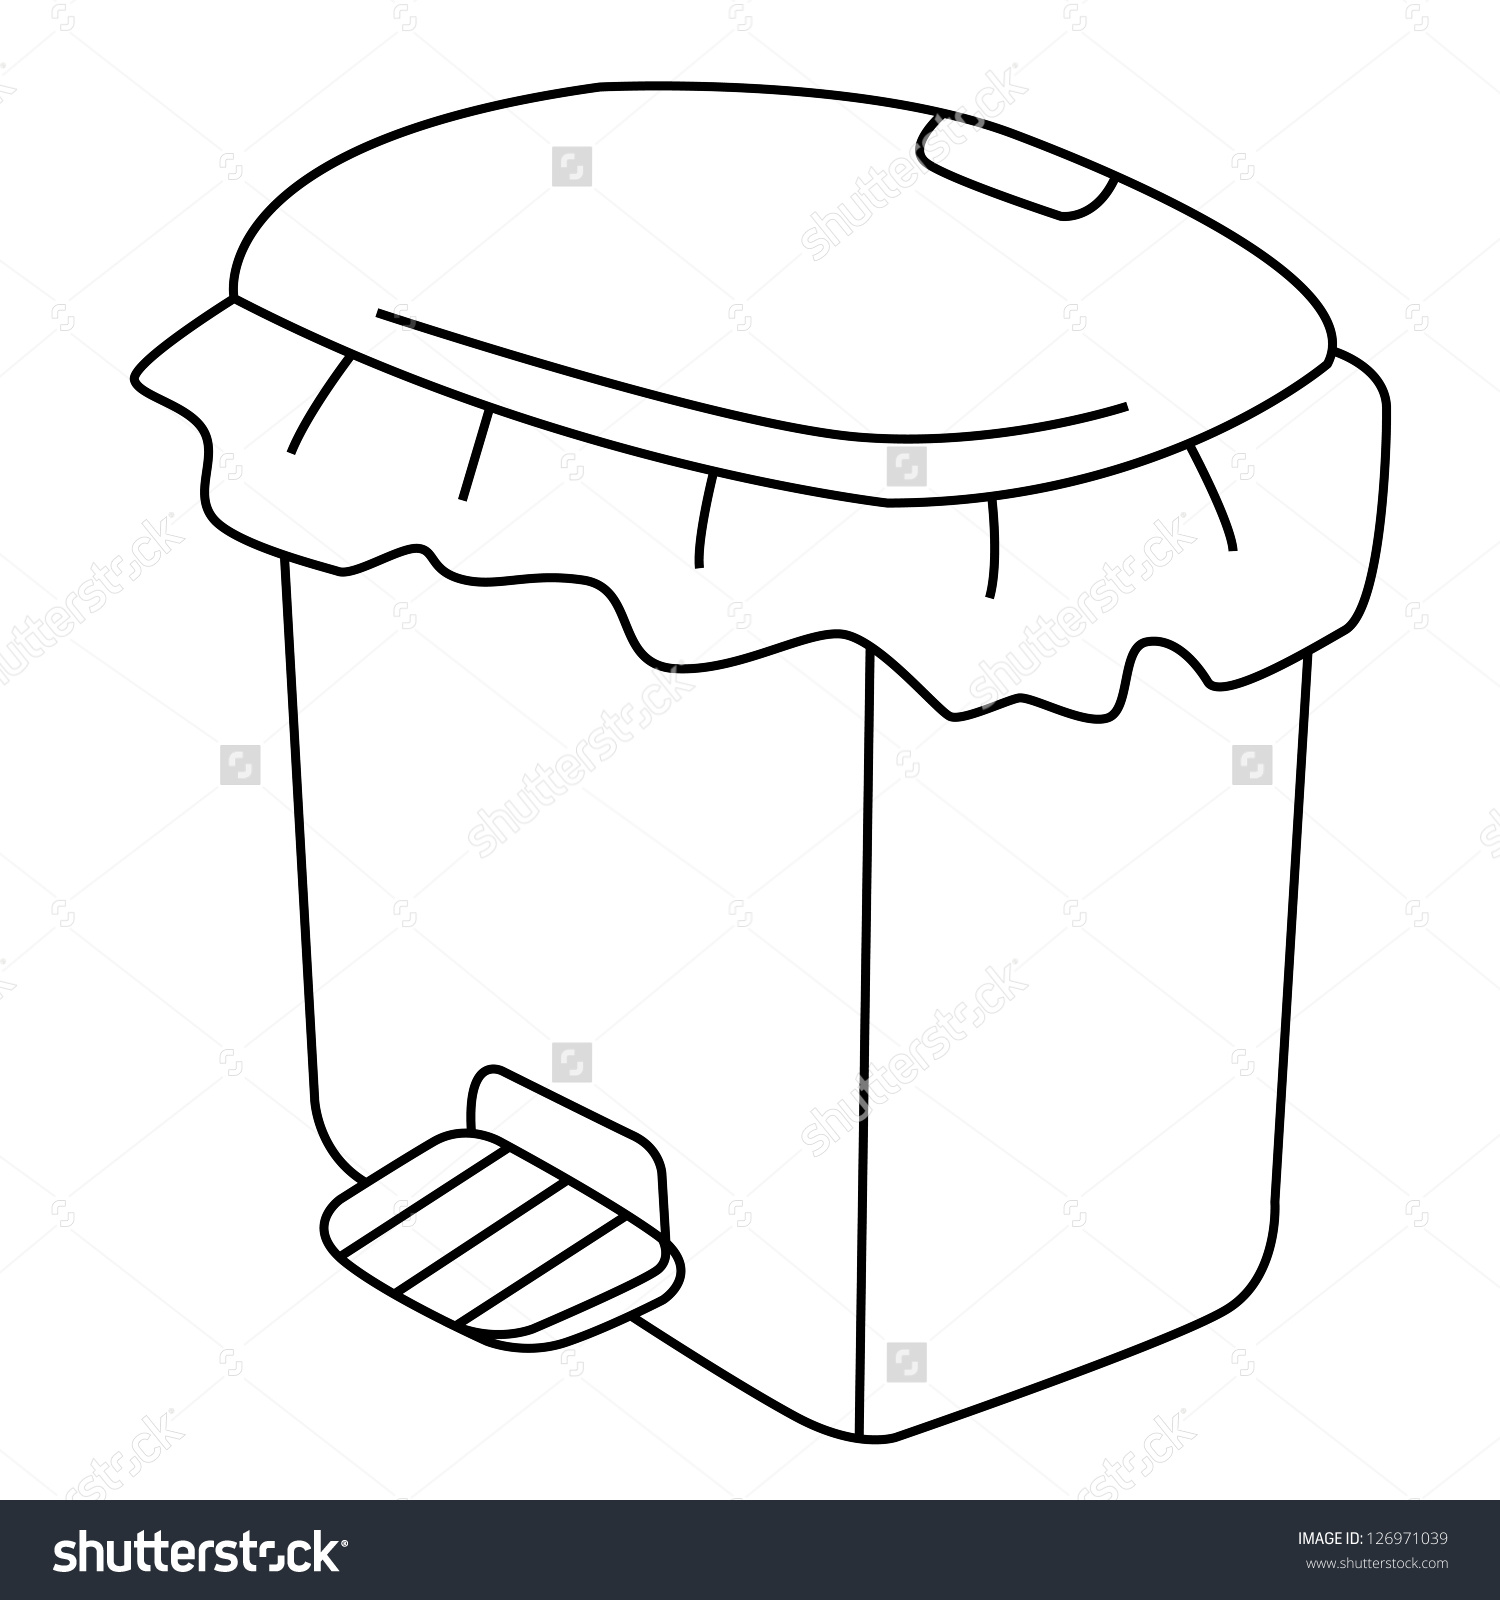 Outline Garbage Can Recycle Bin On Stock Vector 126971039.